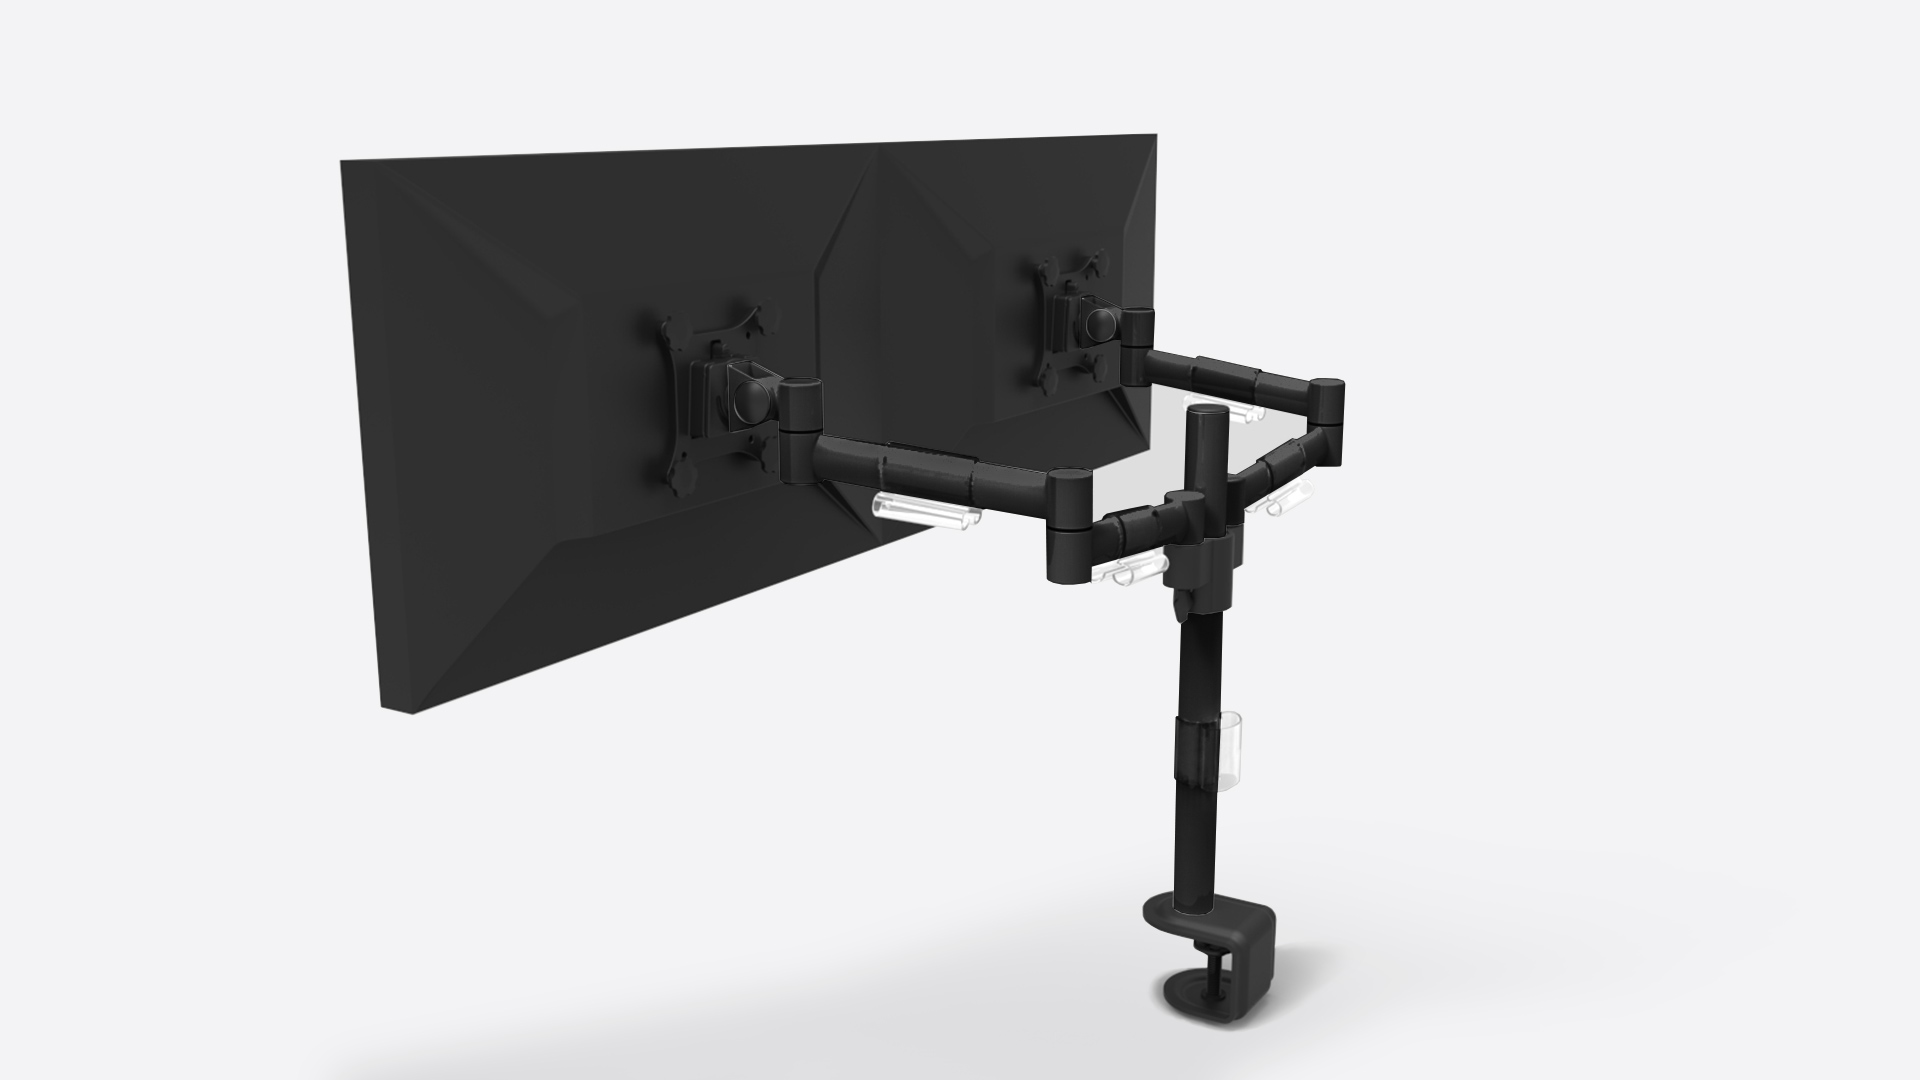 The Ultimate Guide To Finding The Best Monitor Arm For